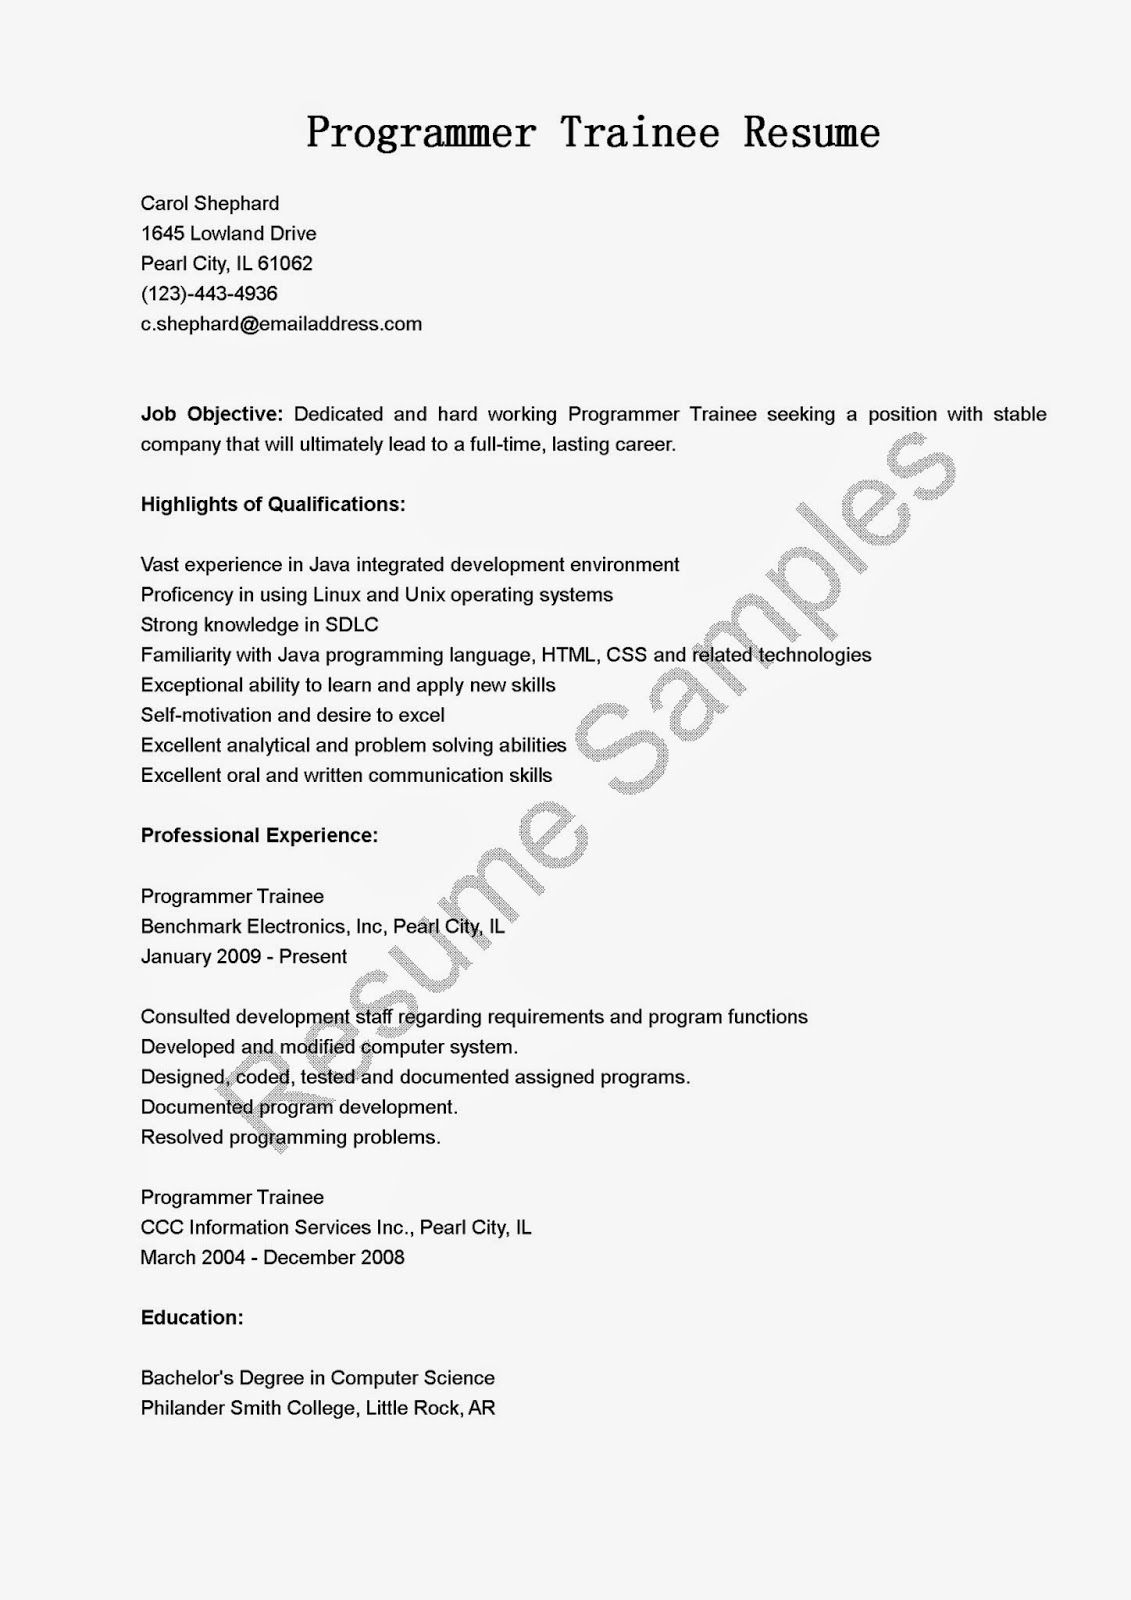 programmer trainee resume sample resume samples resame programmer trainee resume sample resume samples